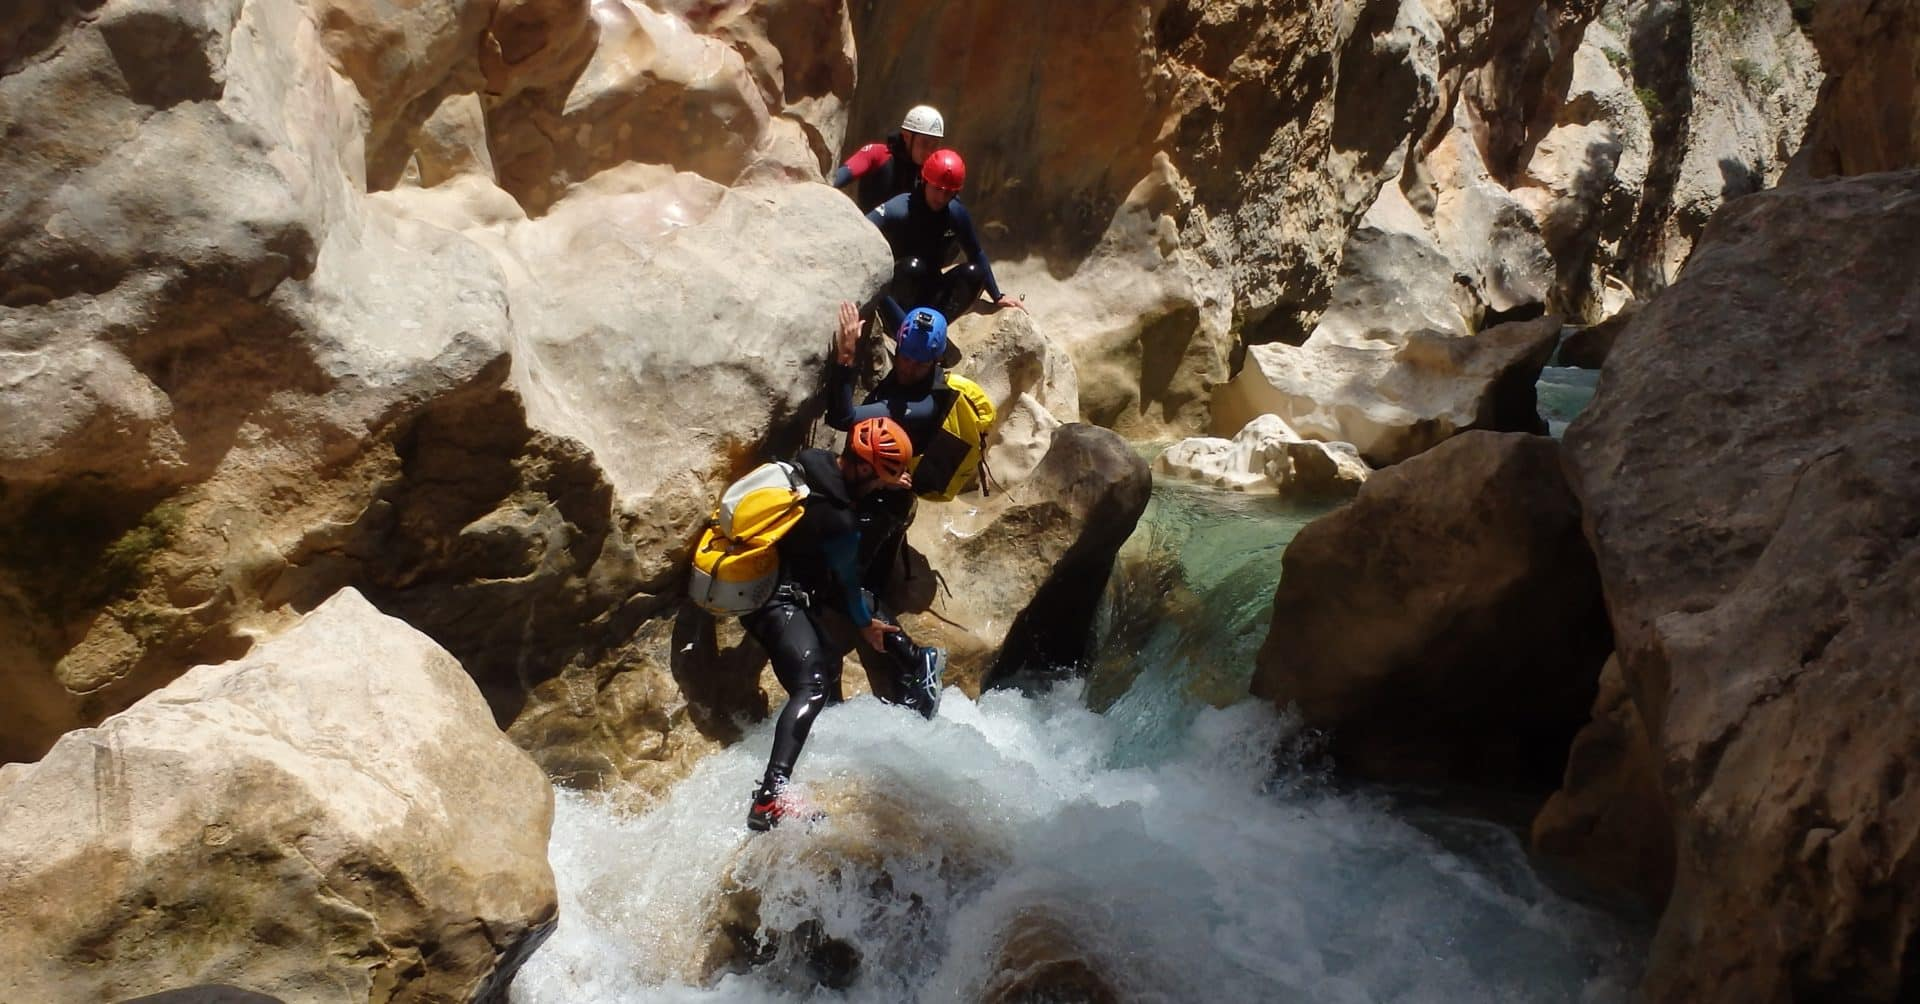 Family canyoning in the Sierra de Guara